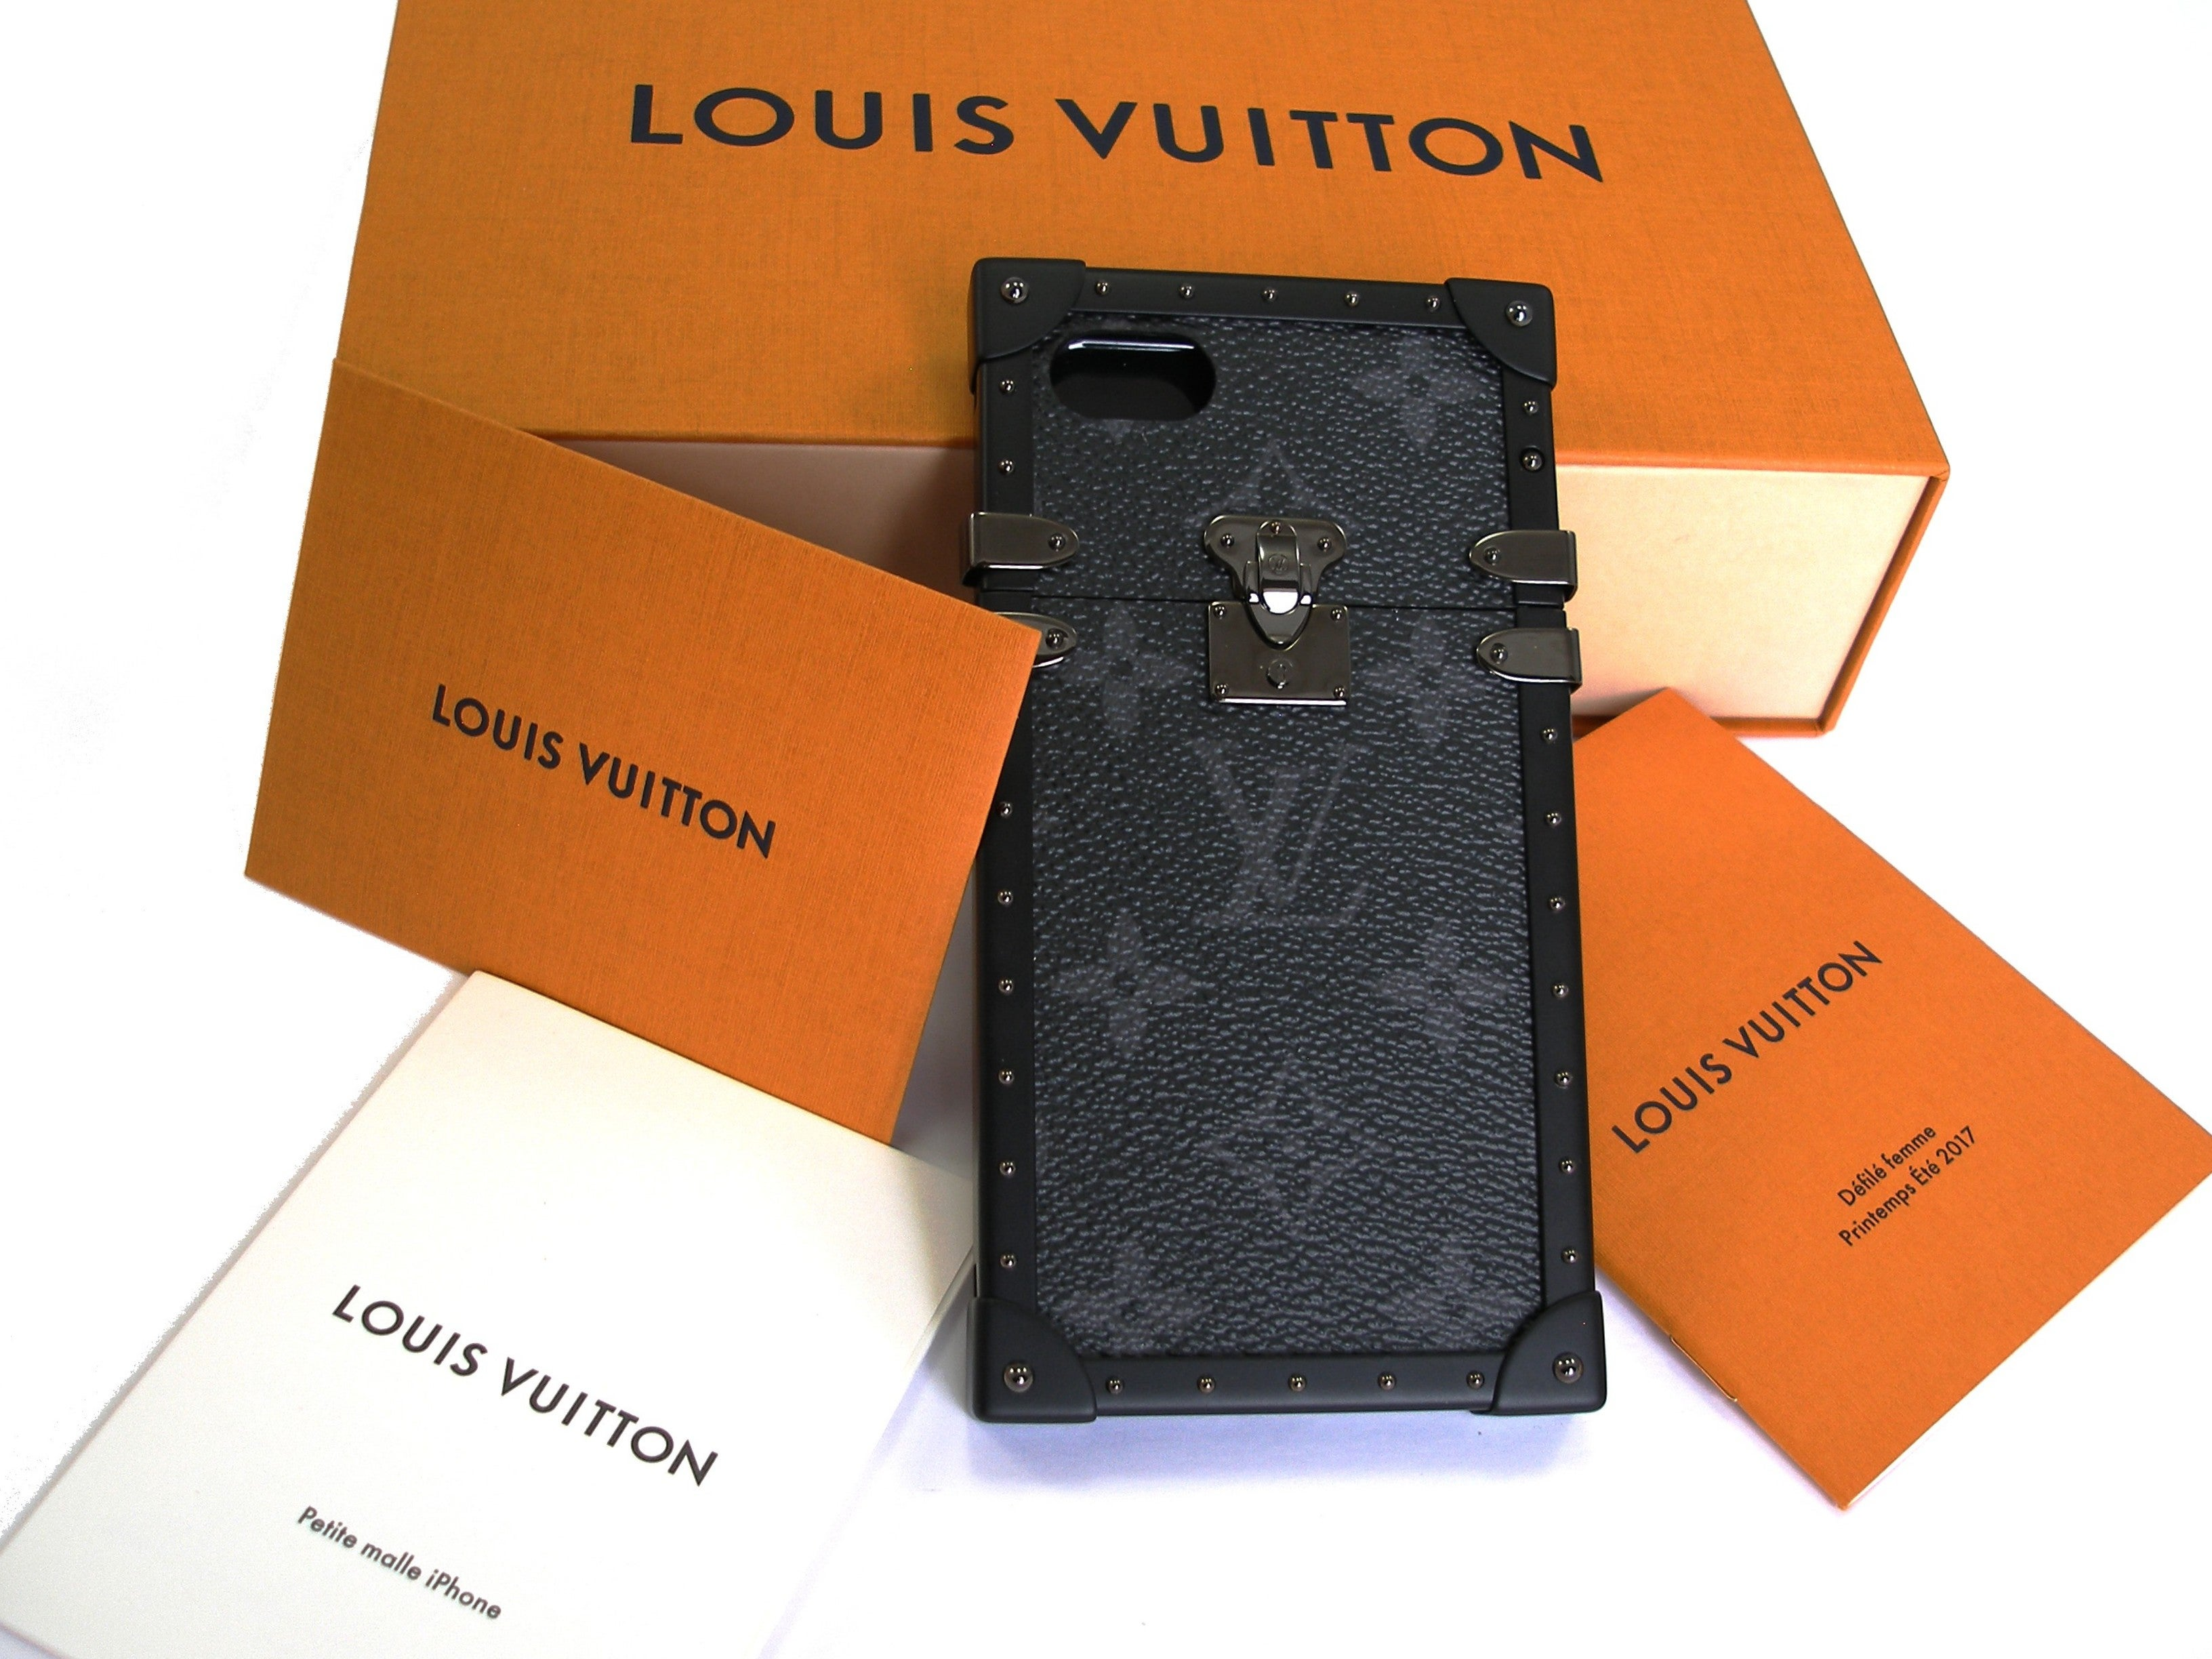 Louis Vuitton Eye-trunk I Phone 7 Eclipse Petite Malle Bnib Original Receipt Is6cs8vB